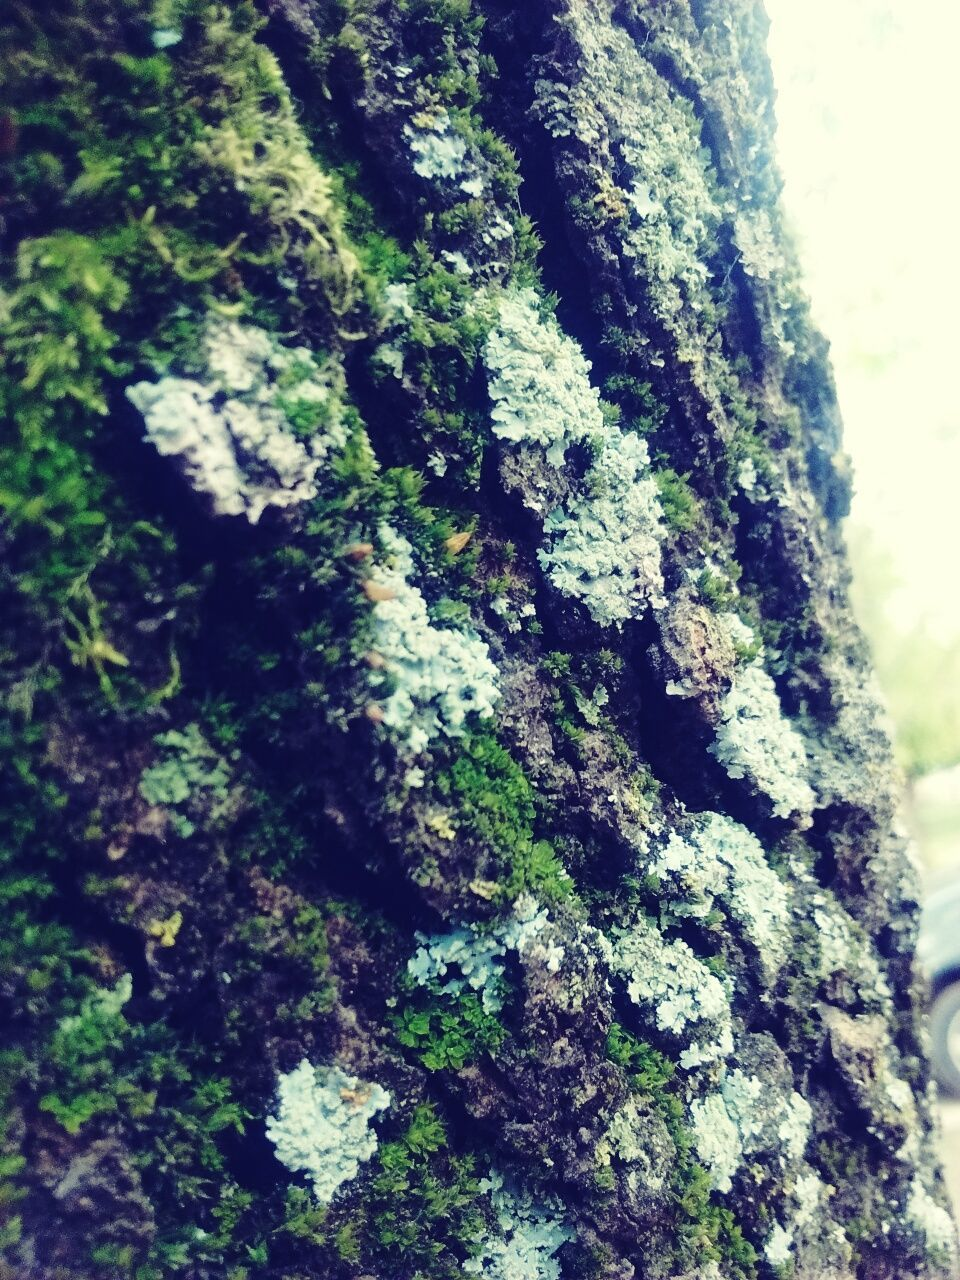 tree trunk, tree, textured, moss, rough, close-up, day, nature, bark, no people, lichen, growth, focus on foreground, outdoors